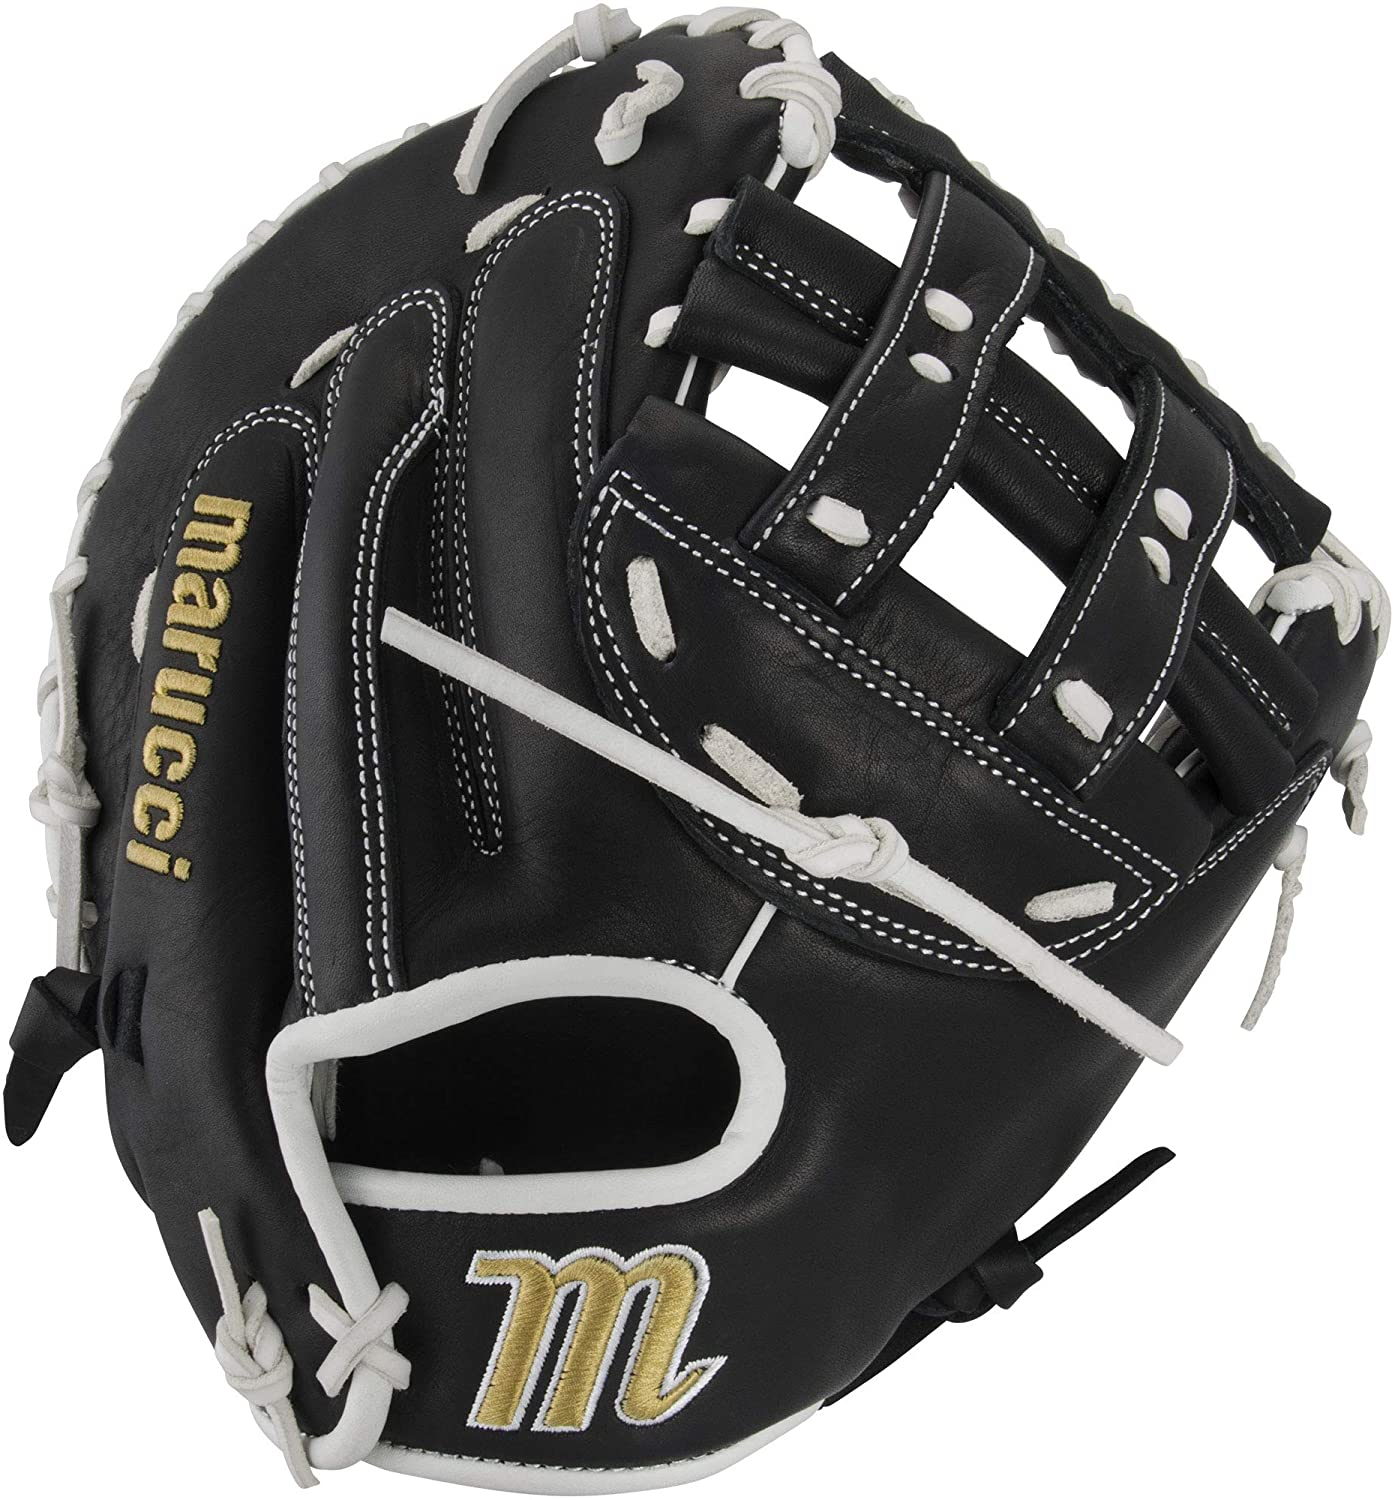 marucci-palmetto-series-fastpitch-softball-mitt-34-right-hand-throw MFGPL2FP-BKW-RightHandThrow Marucci  Soft-tumbled cowhide shell increases durability while reducing weight Cushioned leather finger